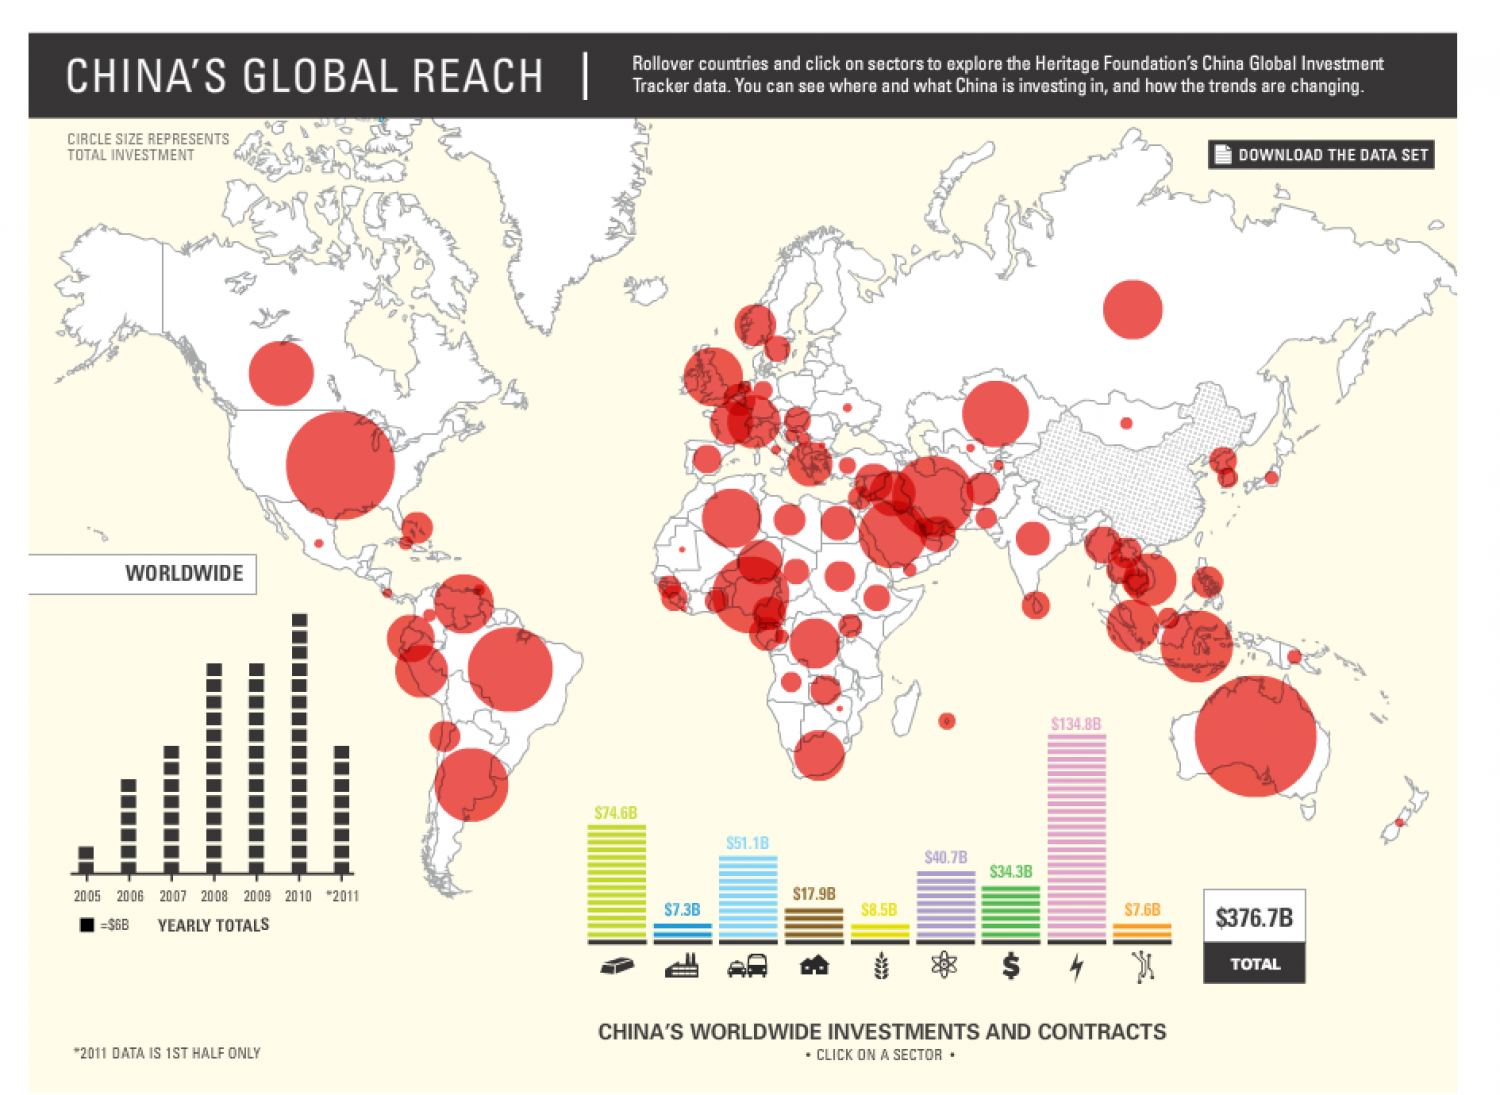 China's Global Reach Infographic